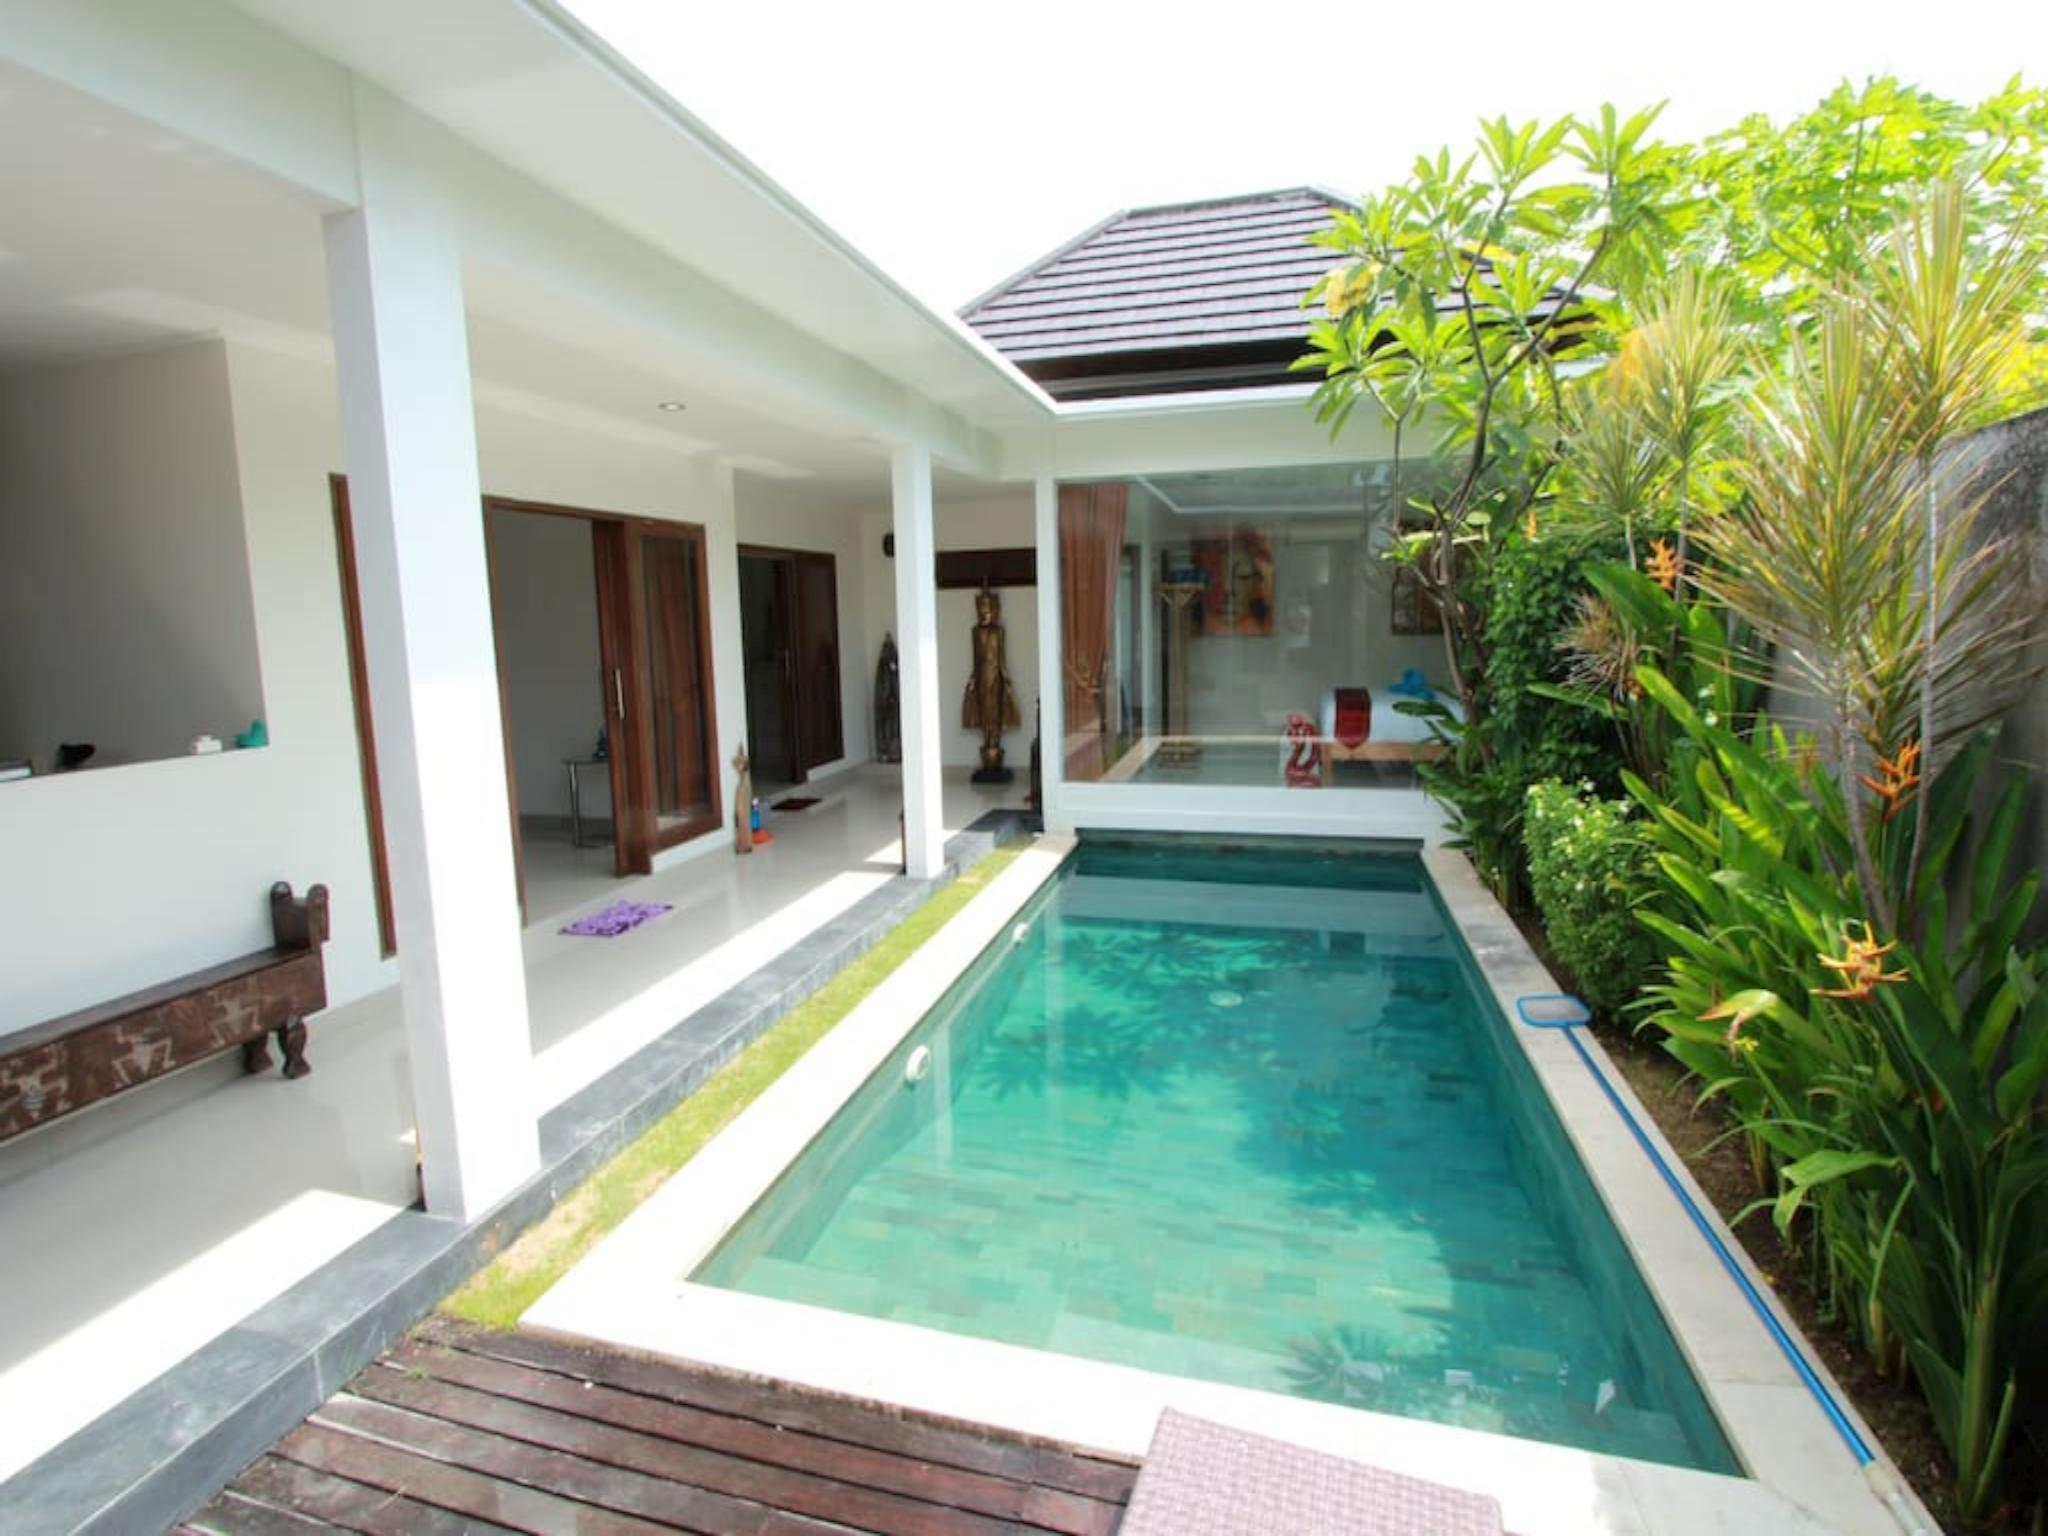 3-bedroom villa lotus ホテル詳細